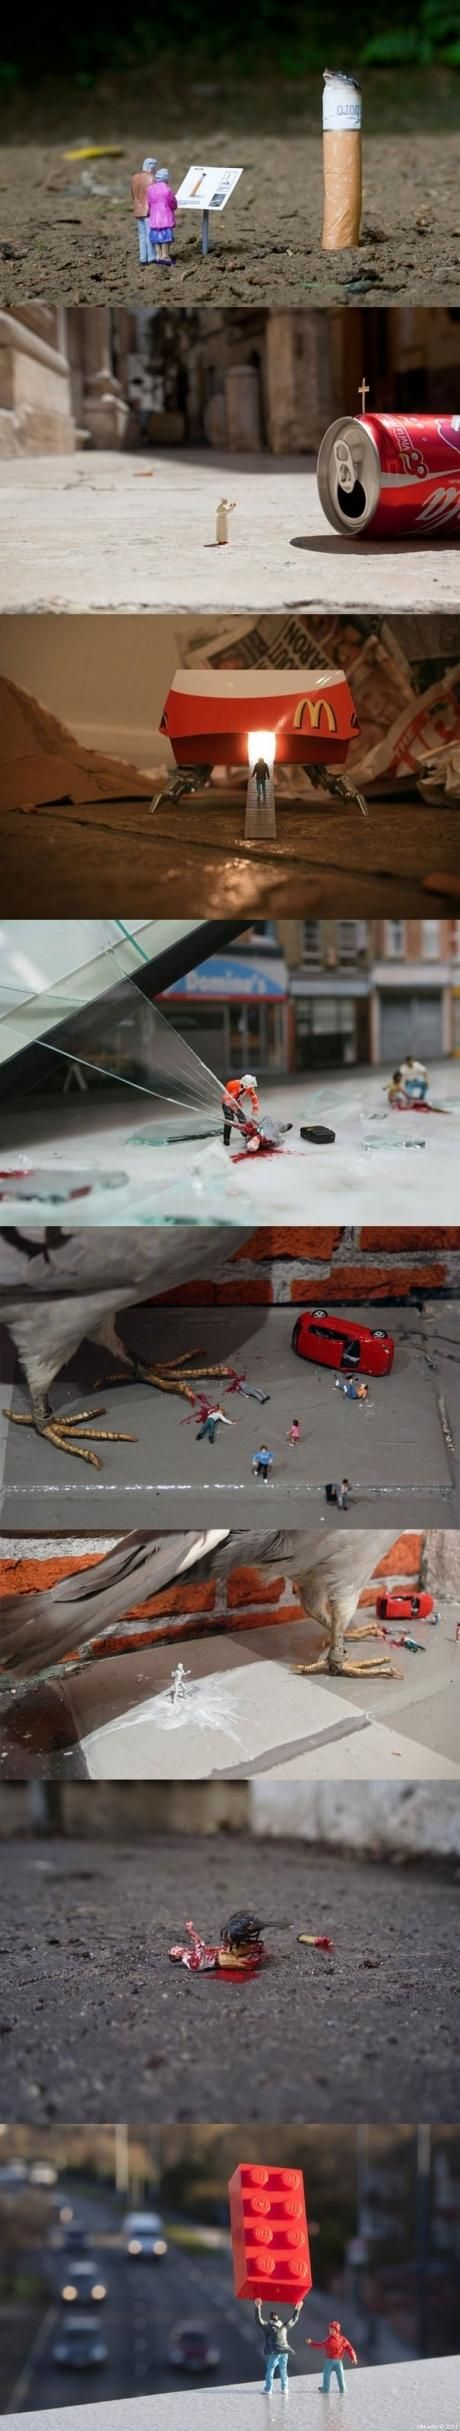 Little people - Win Picture. Staged photos with small objects made to look big.